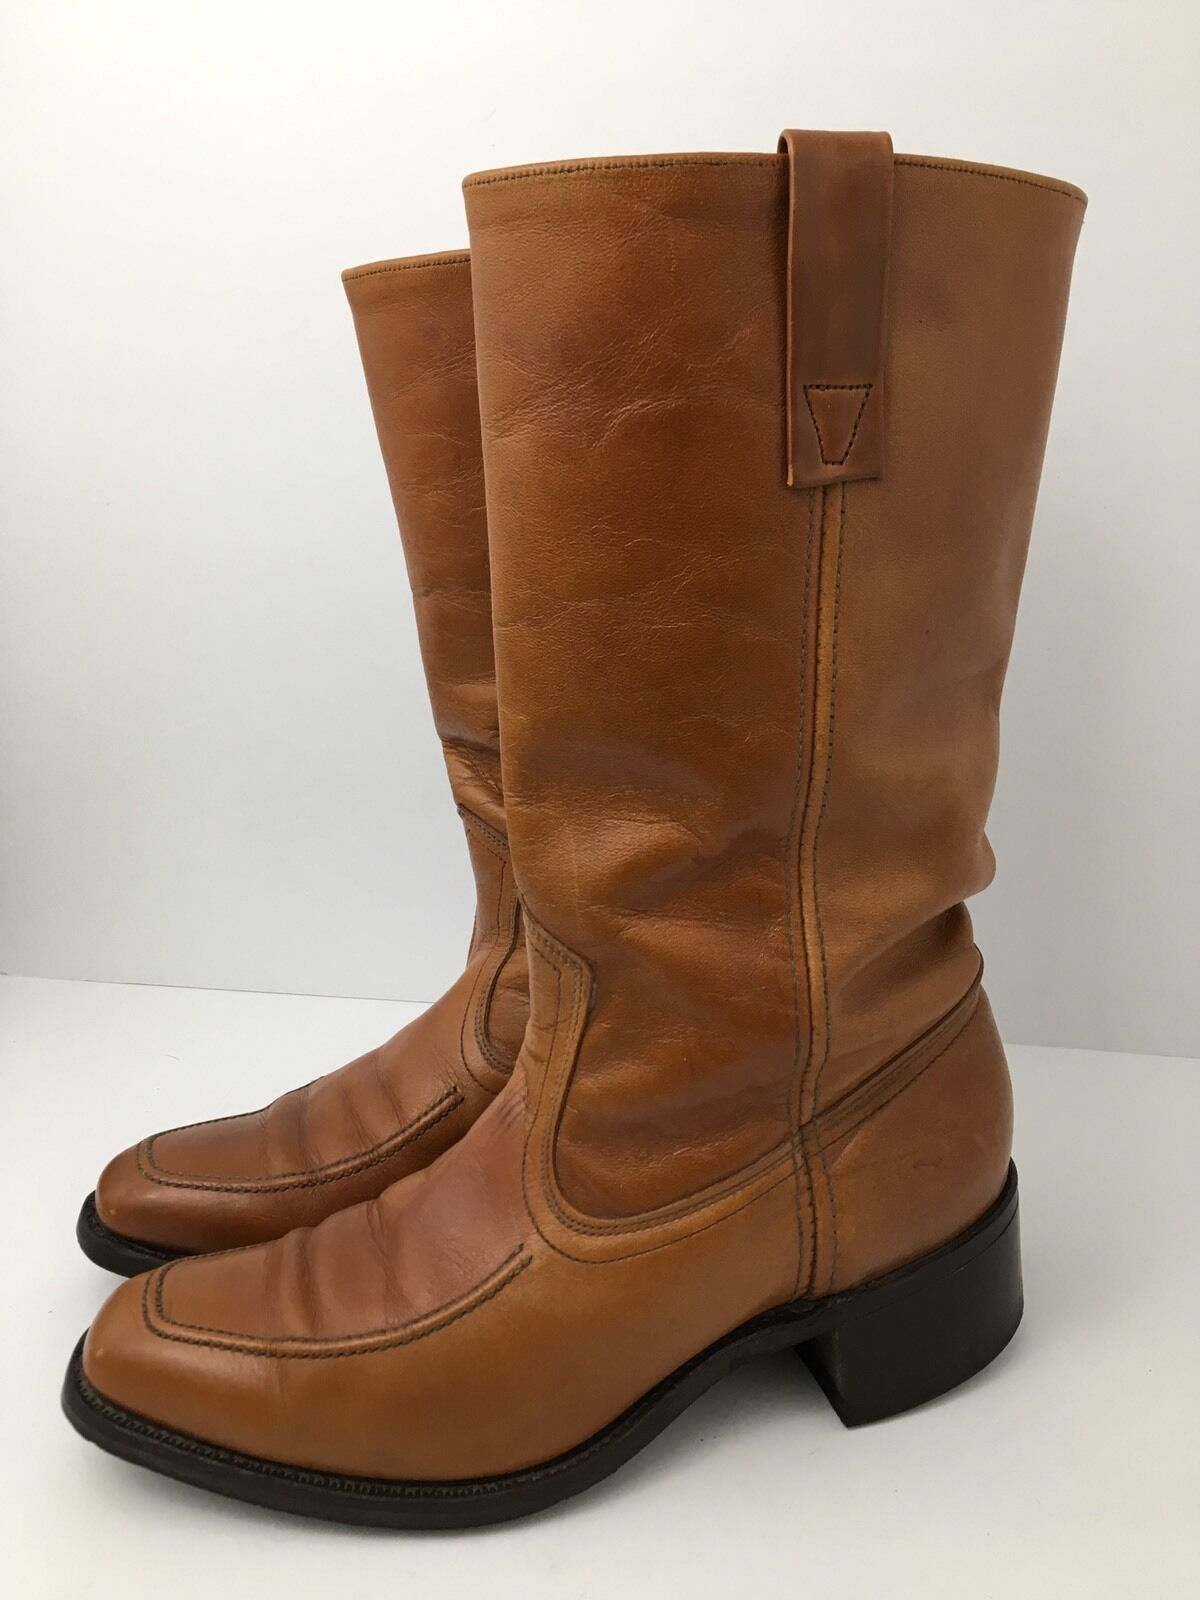 Vintage 70s Mod Dingo Boots Square Toe Brown Leather Hipster Campus Mens 6.5 USA